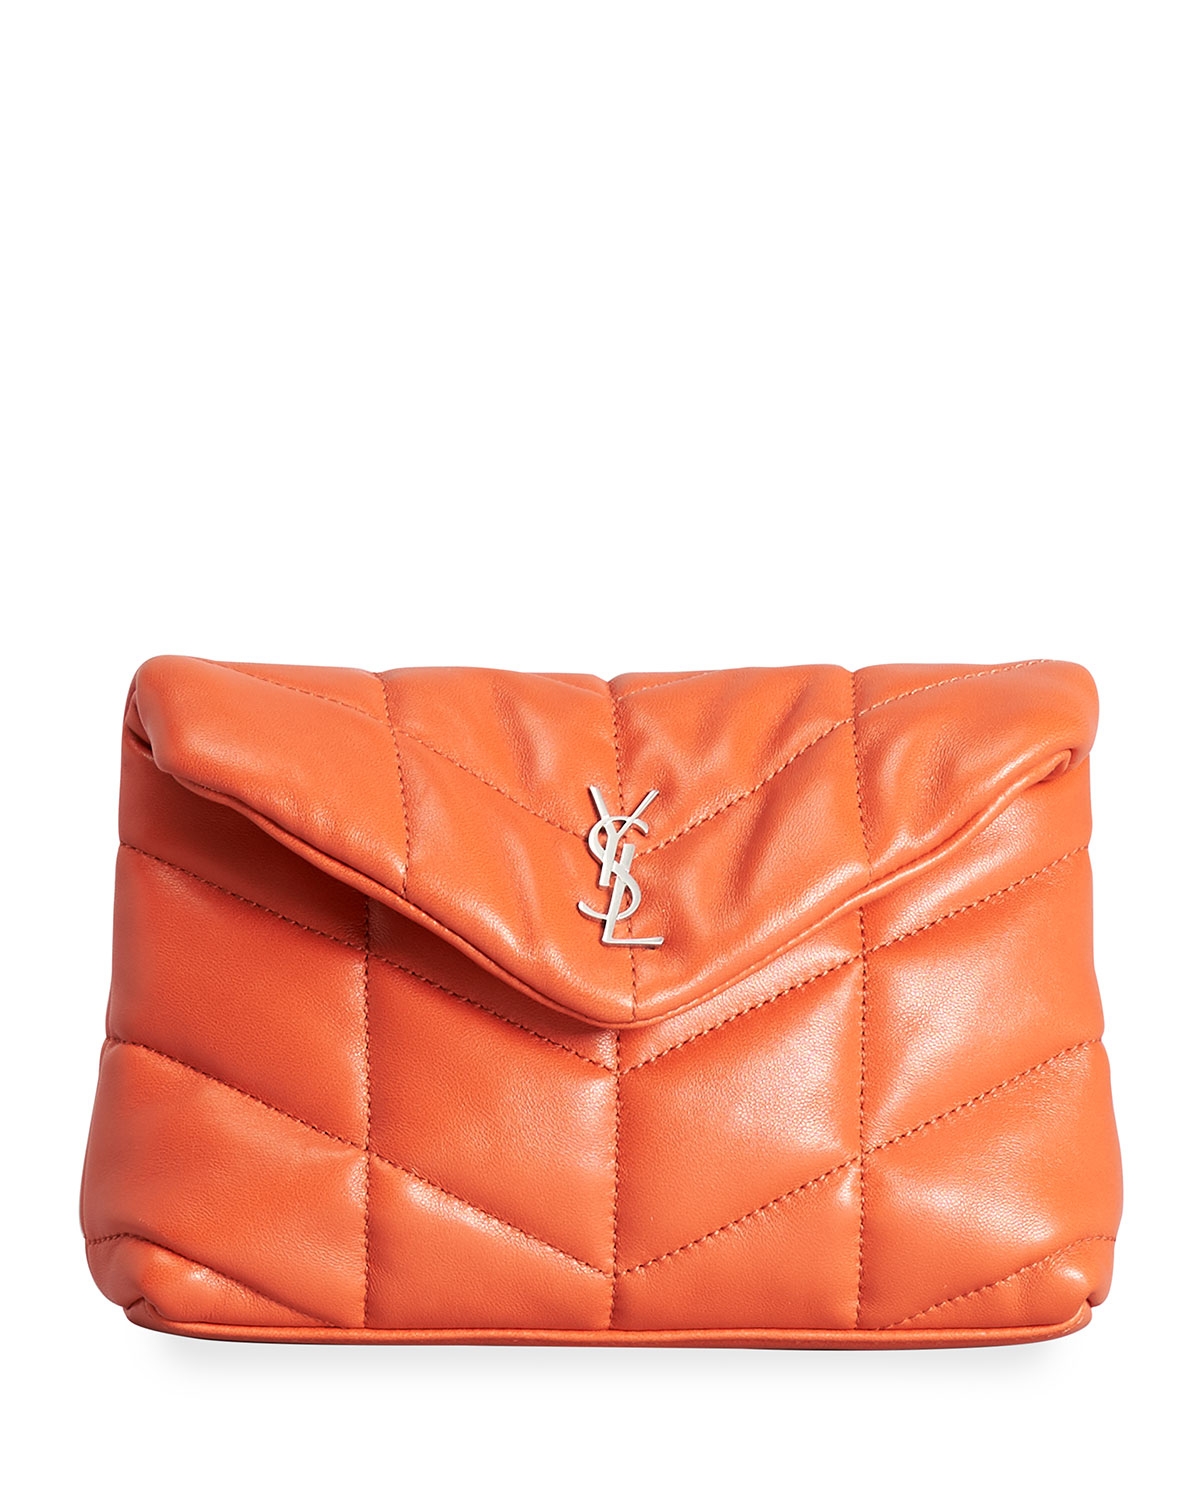 Saint Laurent Loulou Quilted Puffer Pouch Clutch Bag In 1000 Nero